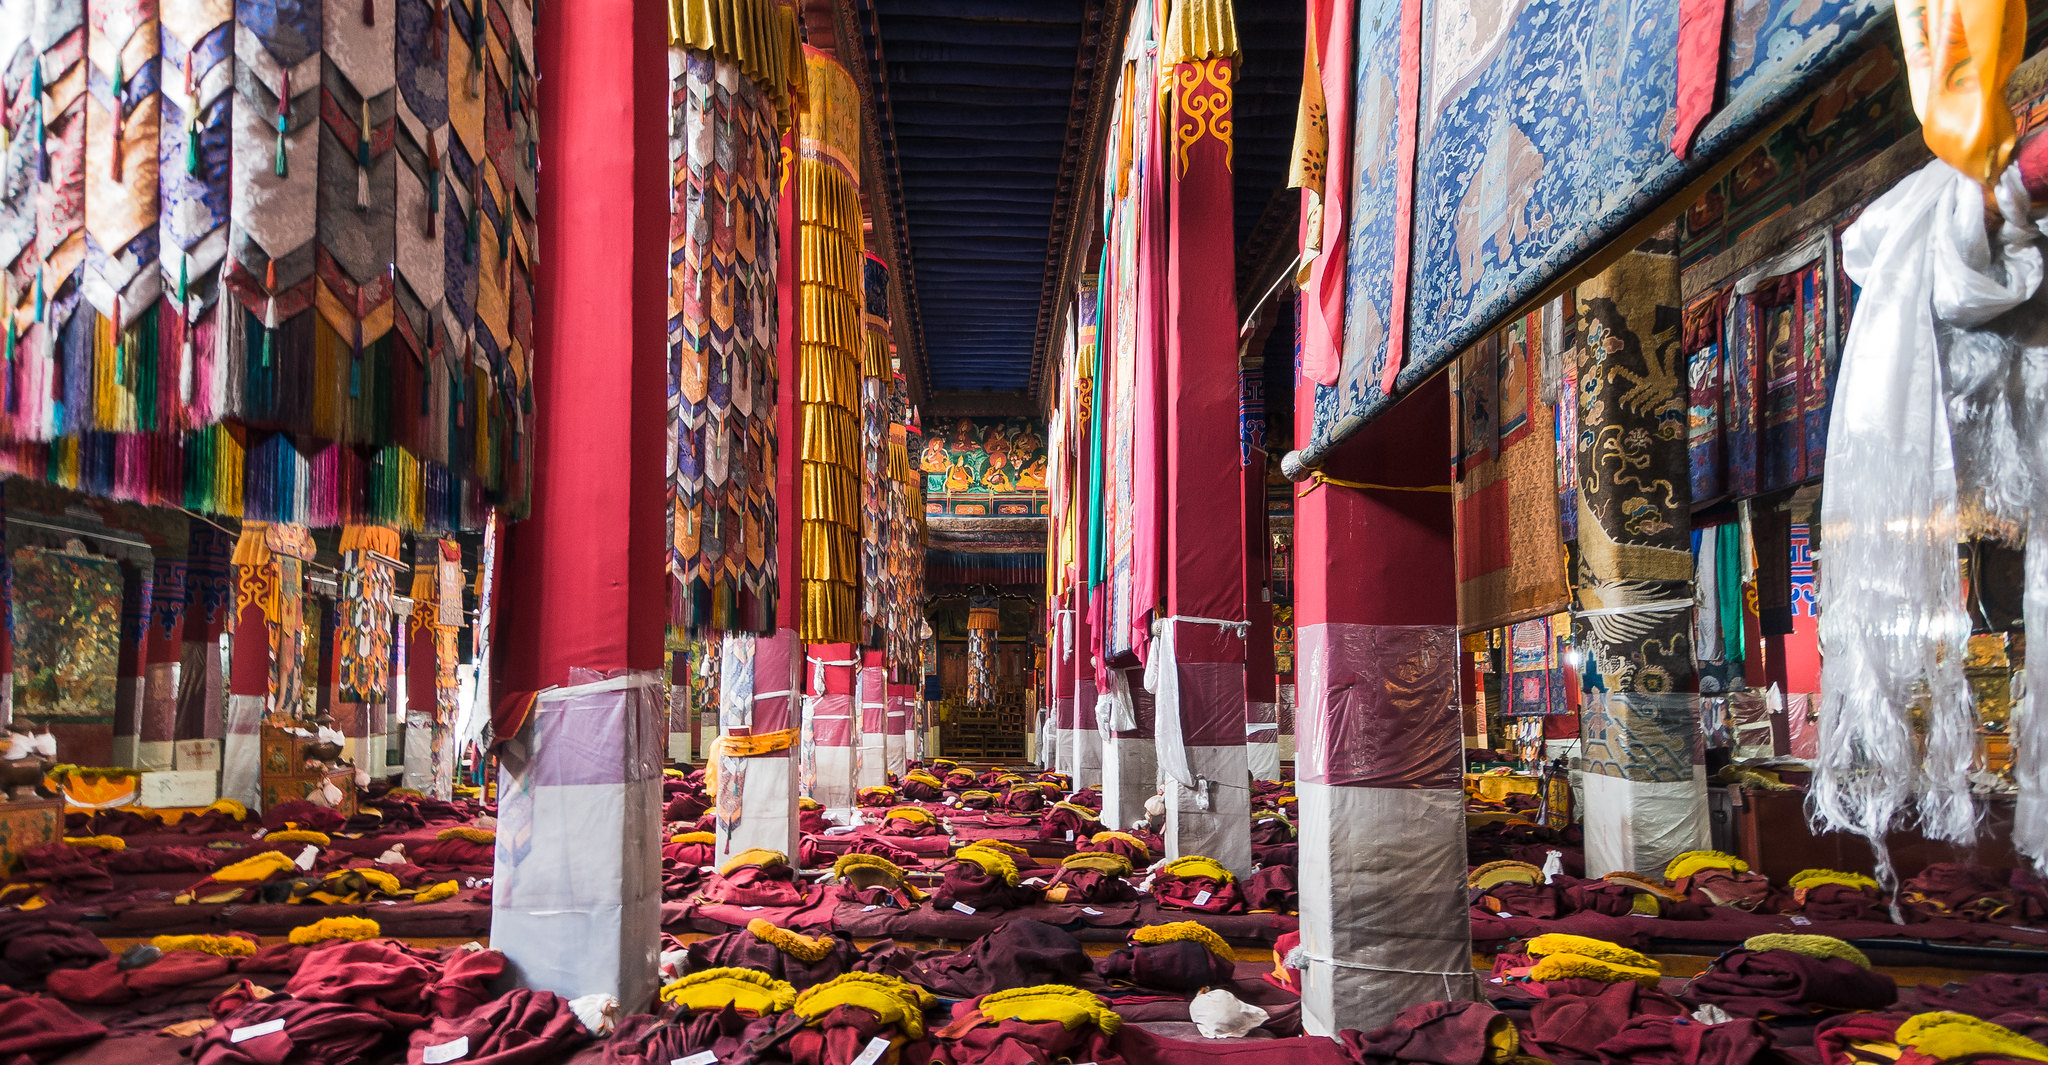 Assembly Hall at Drepung Monastery